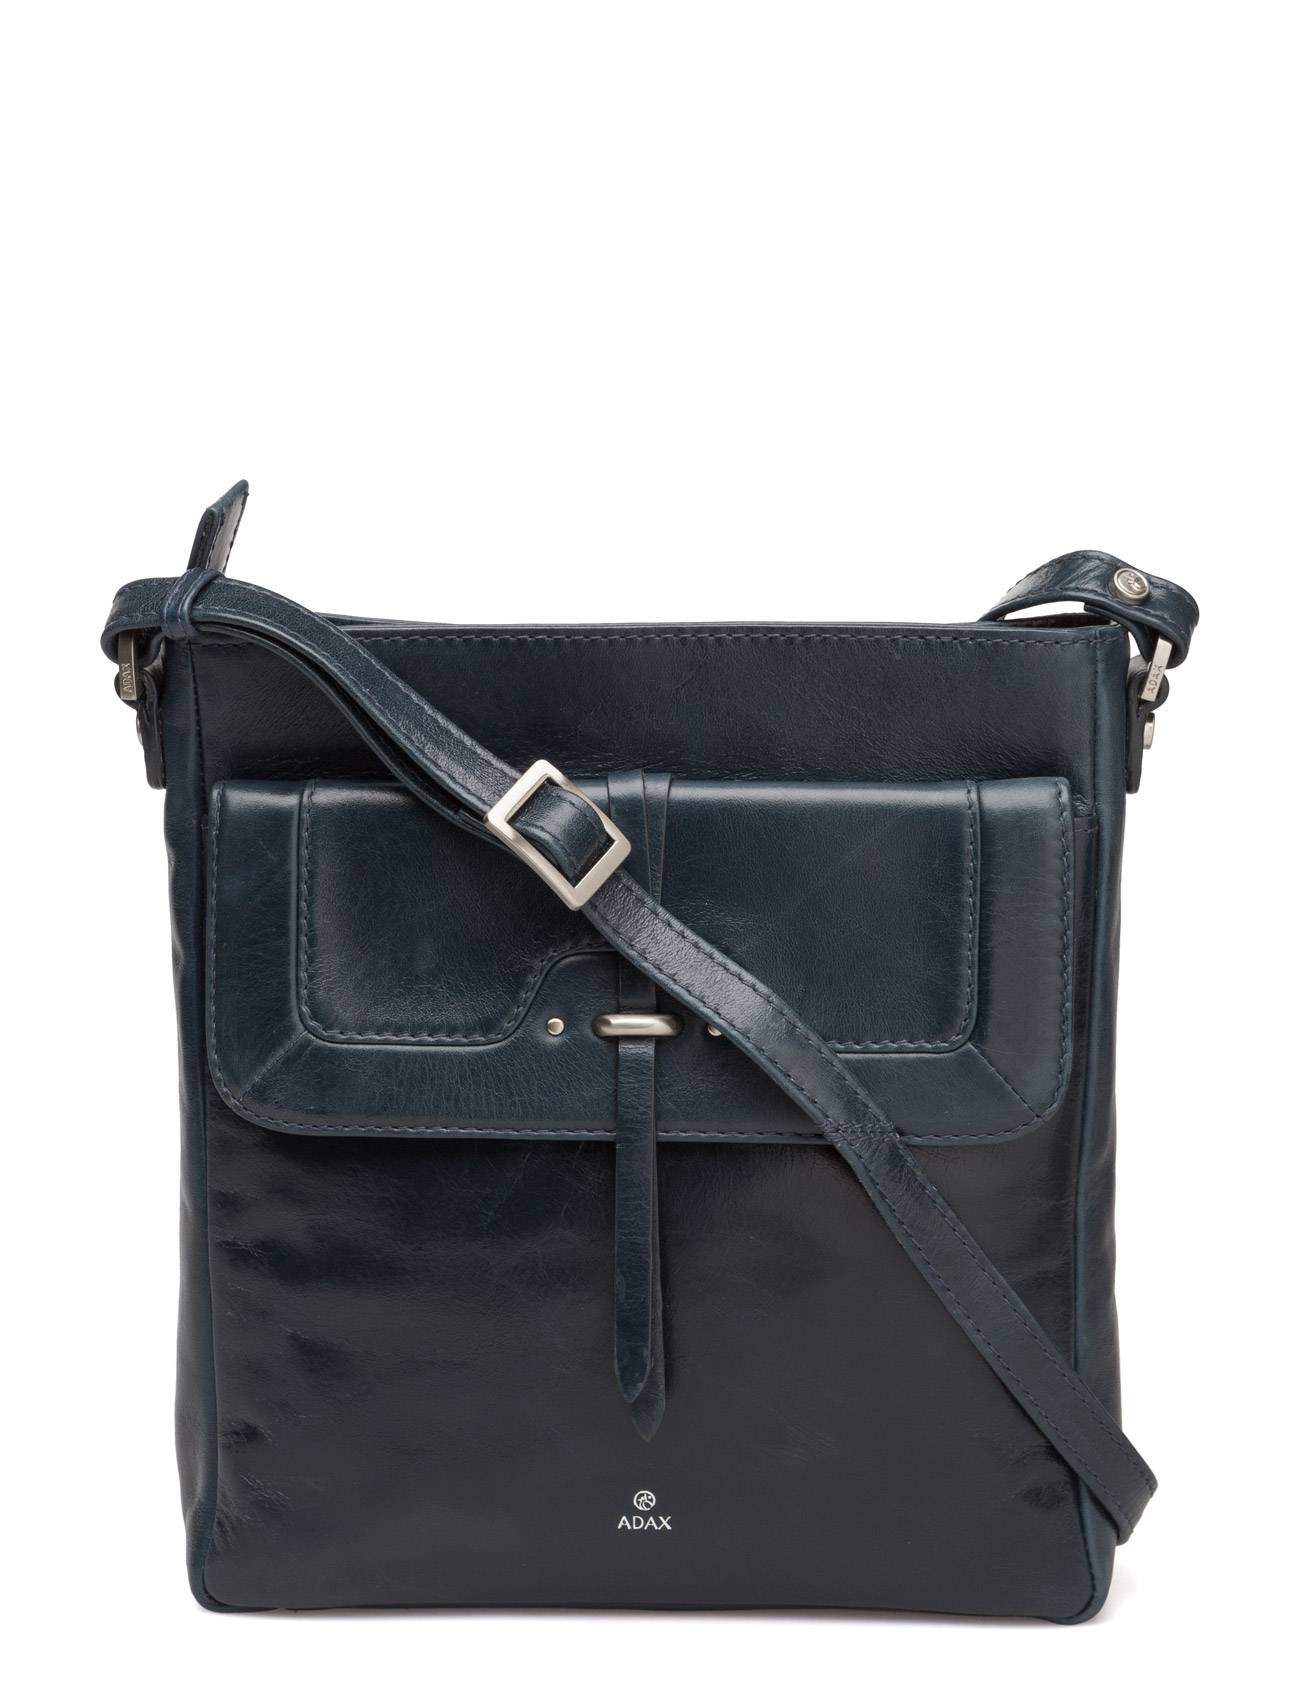 Adax Salerno Crossbody Silvia